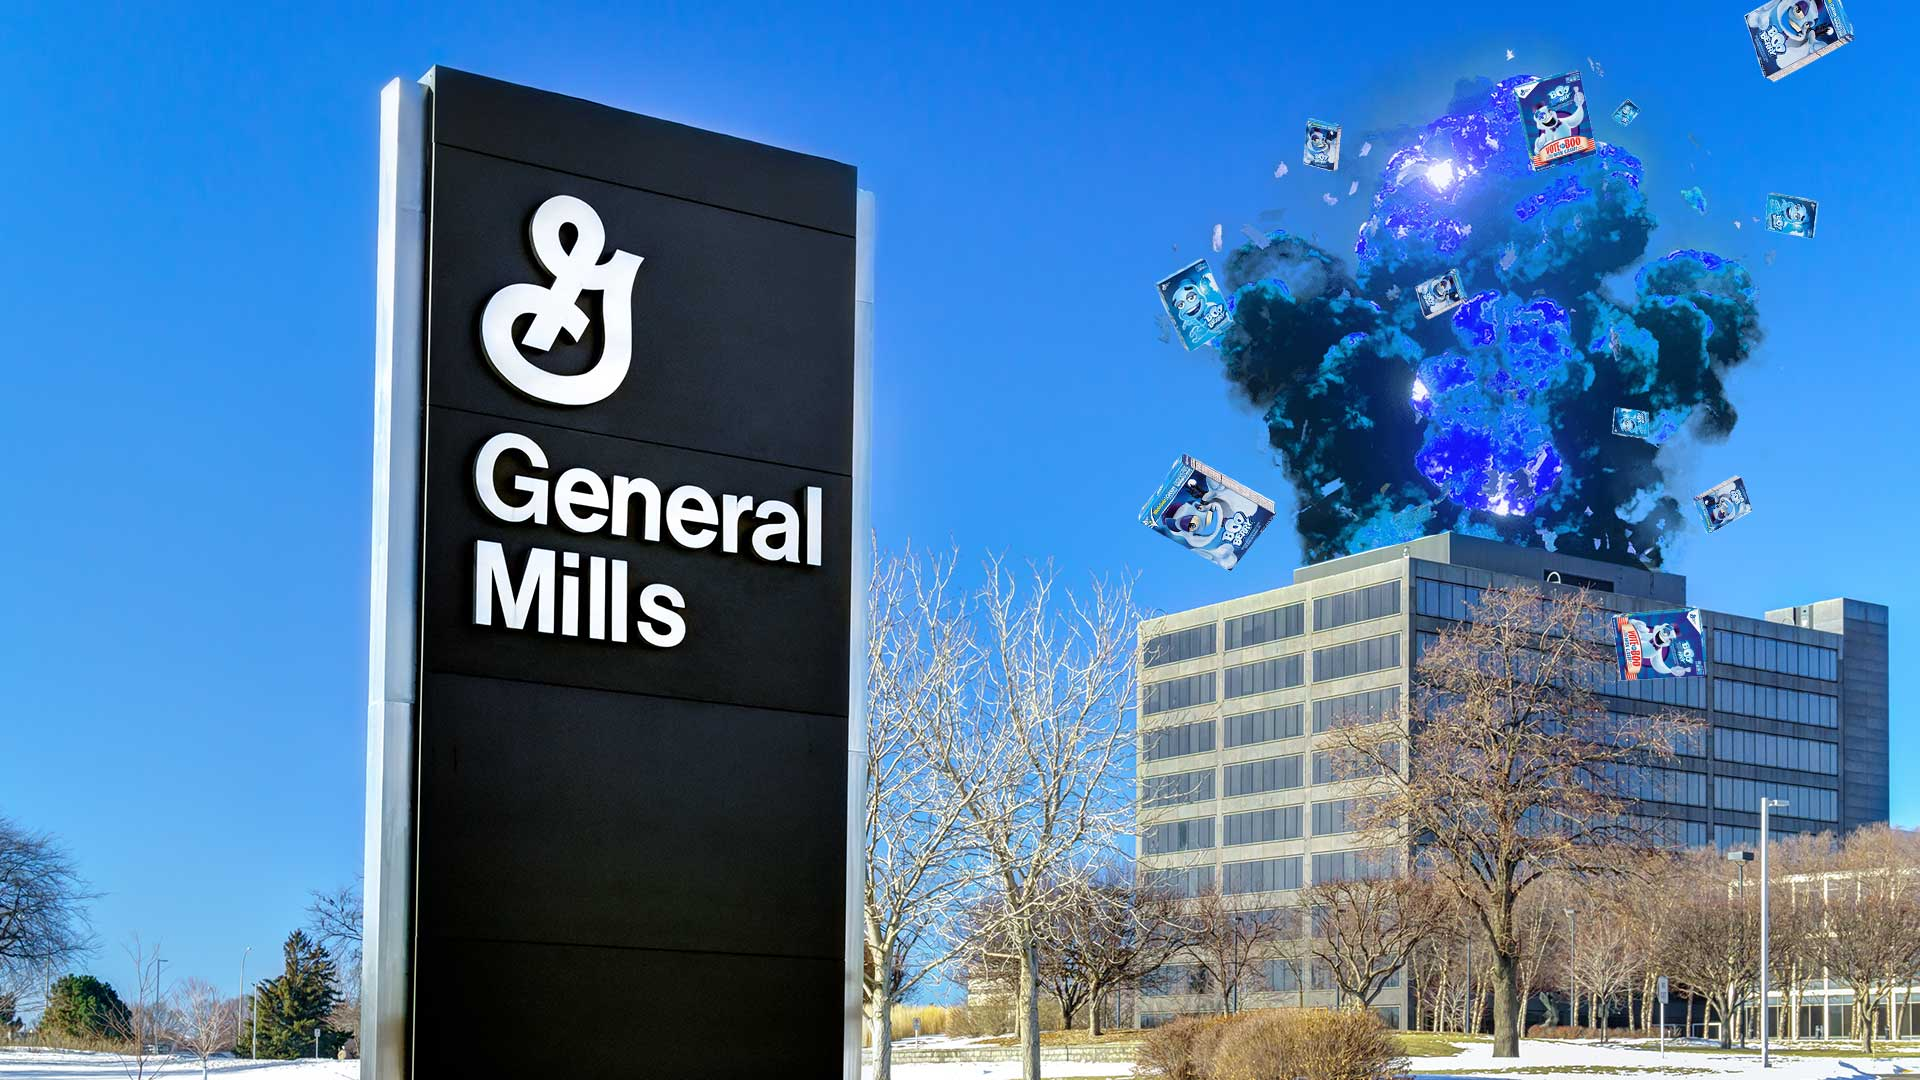 General-Mills-Shut-Down-After-Several-Contest-Winners-Injured-in-Freak-Accidents-on-Tour.jpg